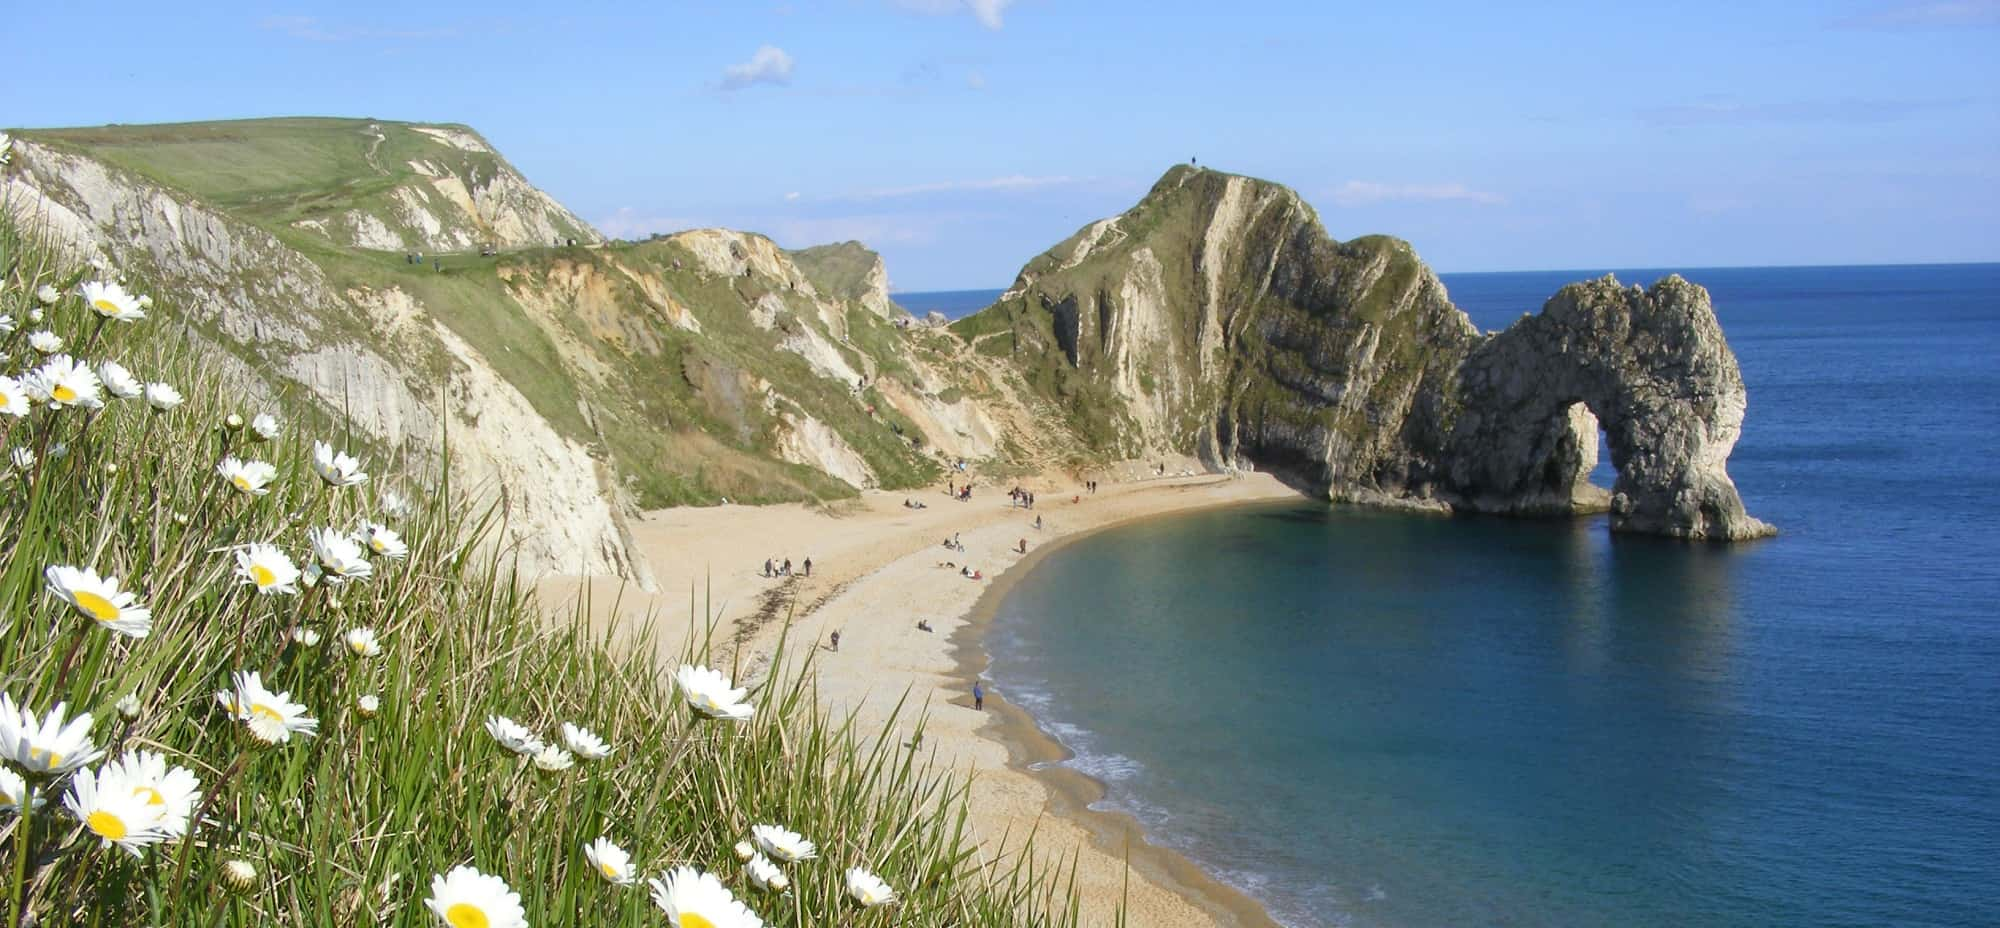 Jurassic Coast Walk with Durdle Door near West Wareham in England